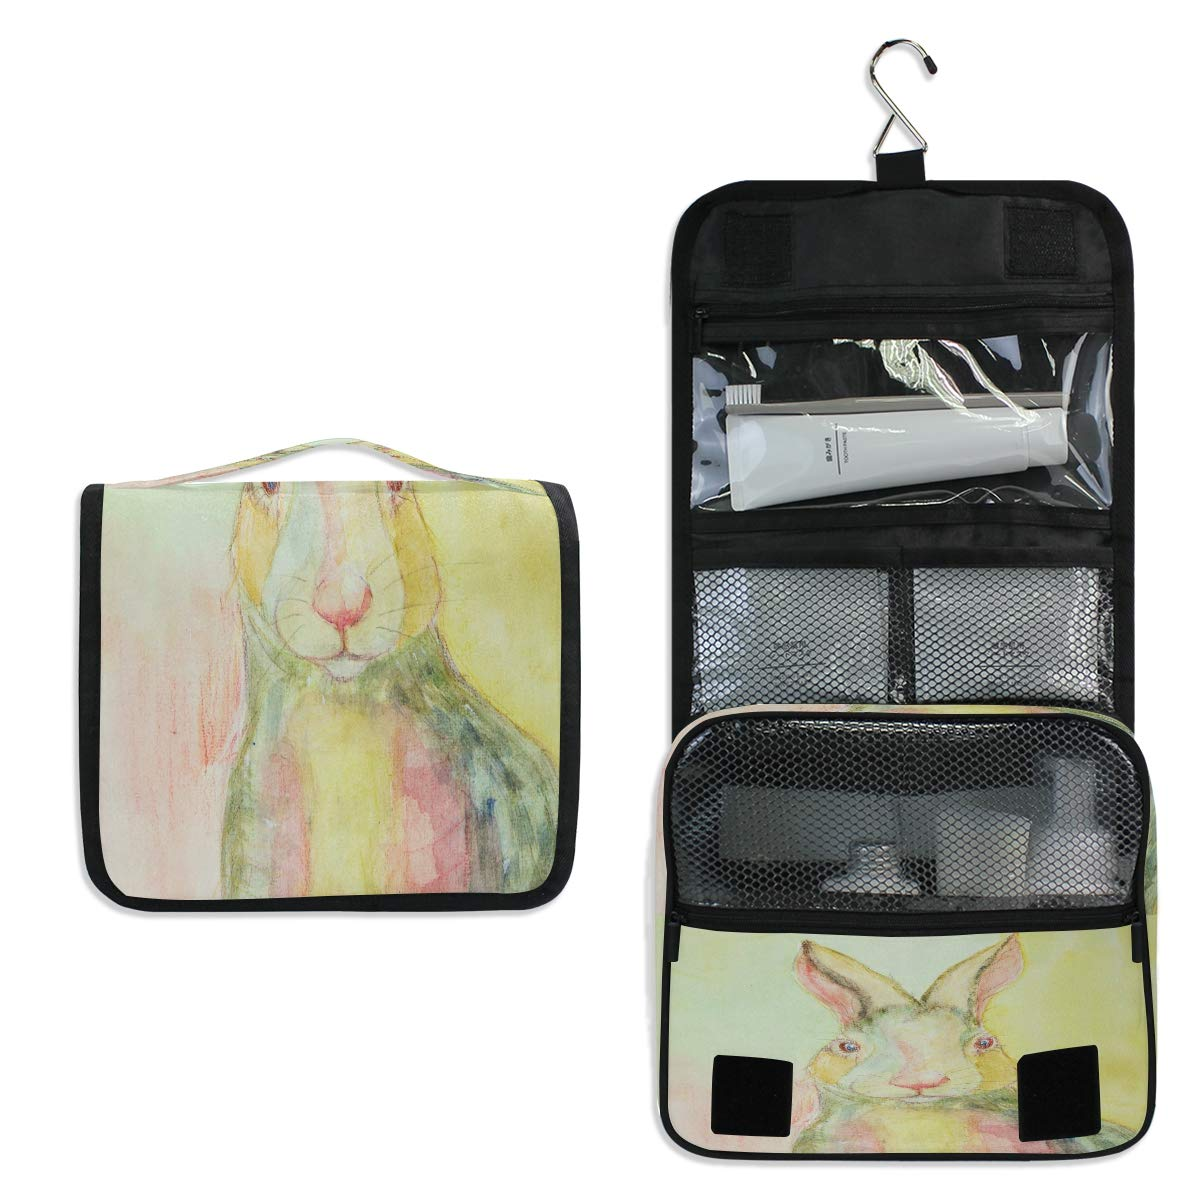 Hanging Toiletry Bag, A Rabbit Waterproof Quilted Wash Gargle Bag Portable Travel Bathroom Shower Bags Deluxe Large Makeup Brush Case Capacity Pouch for Men and Woman